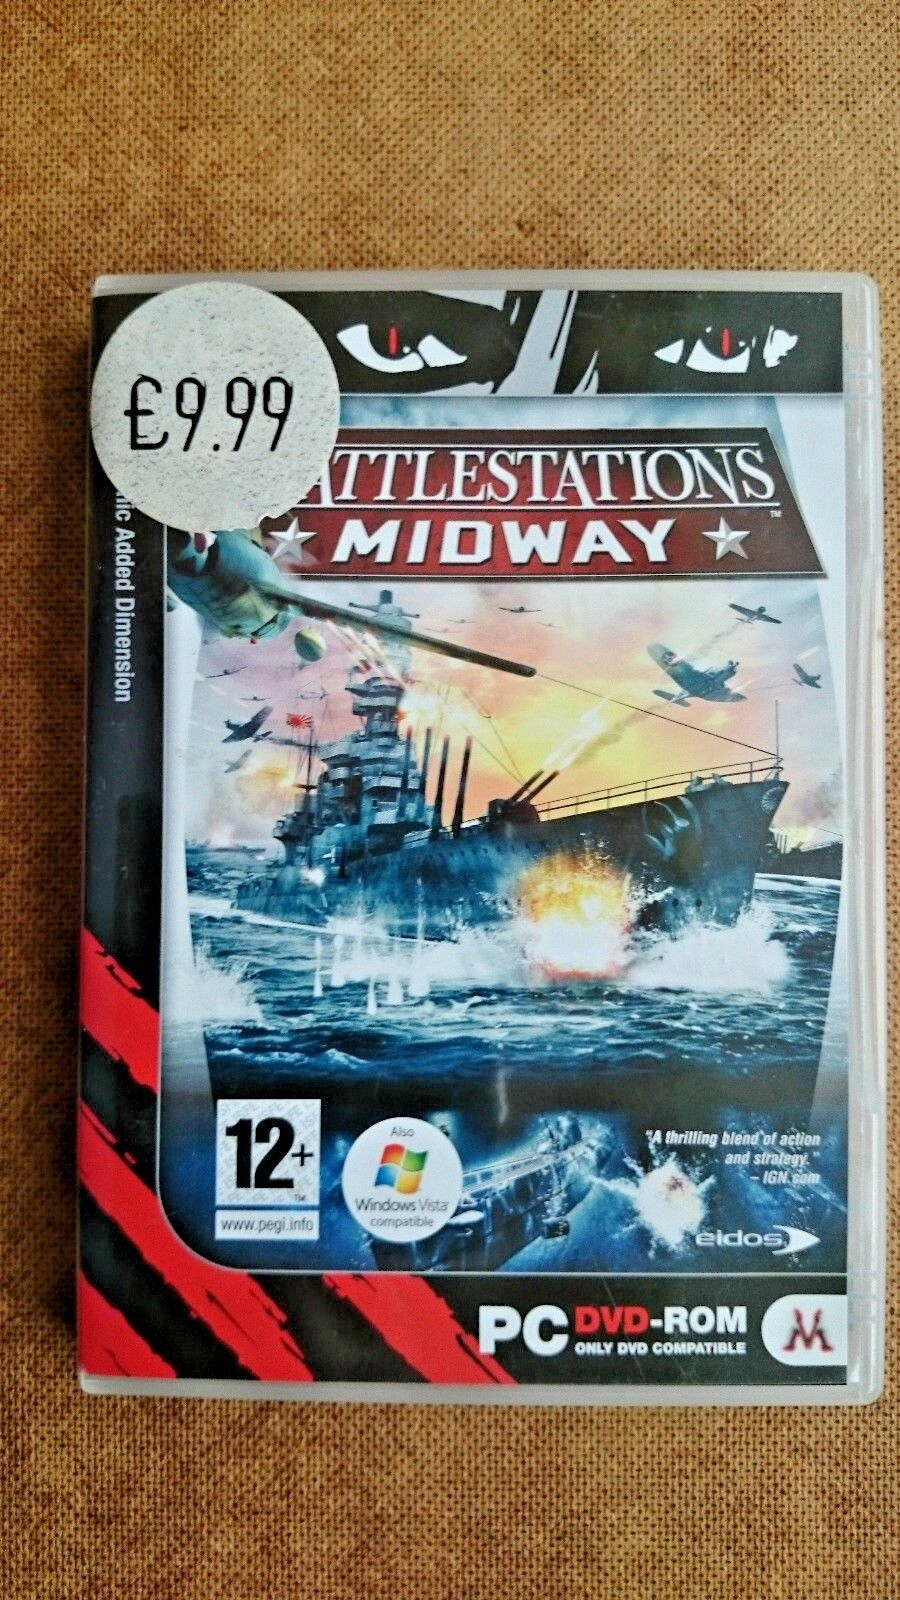 Battle Stations: Midway (PC: Windows, 2007) - Mad Release